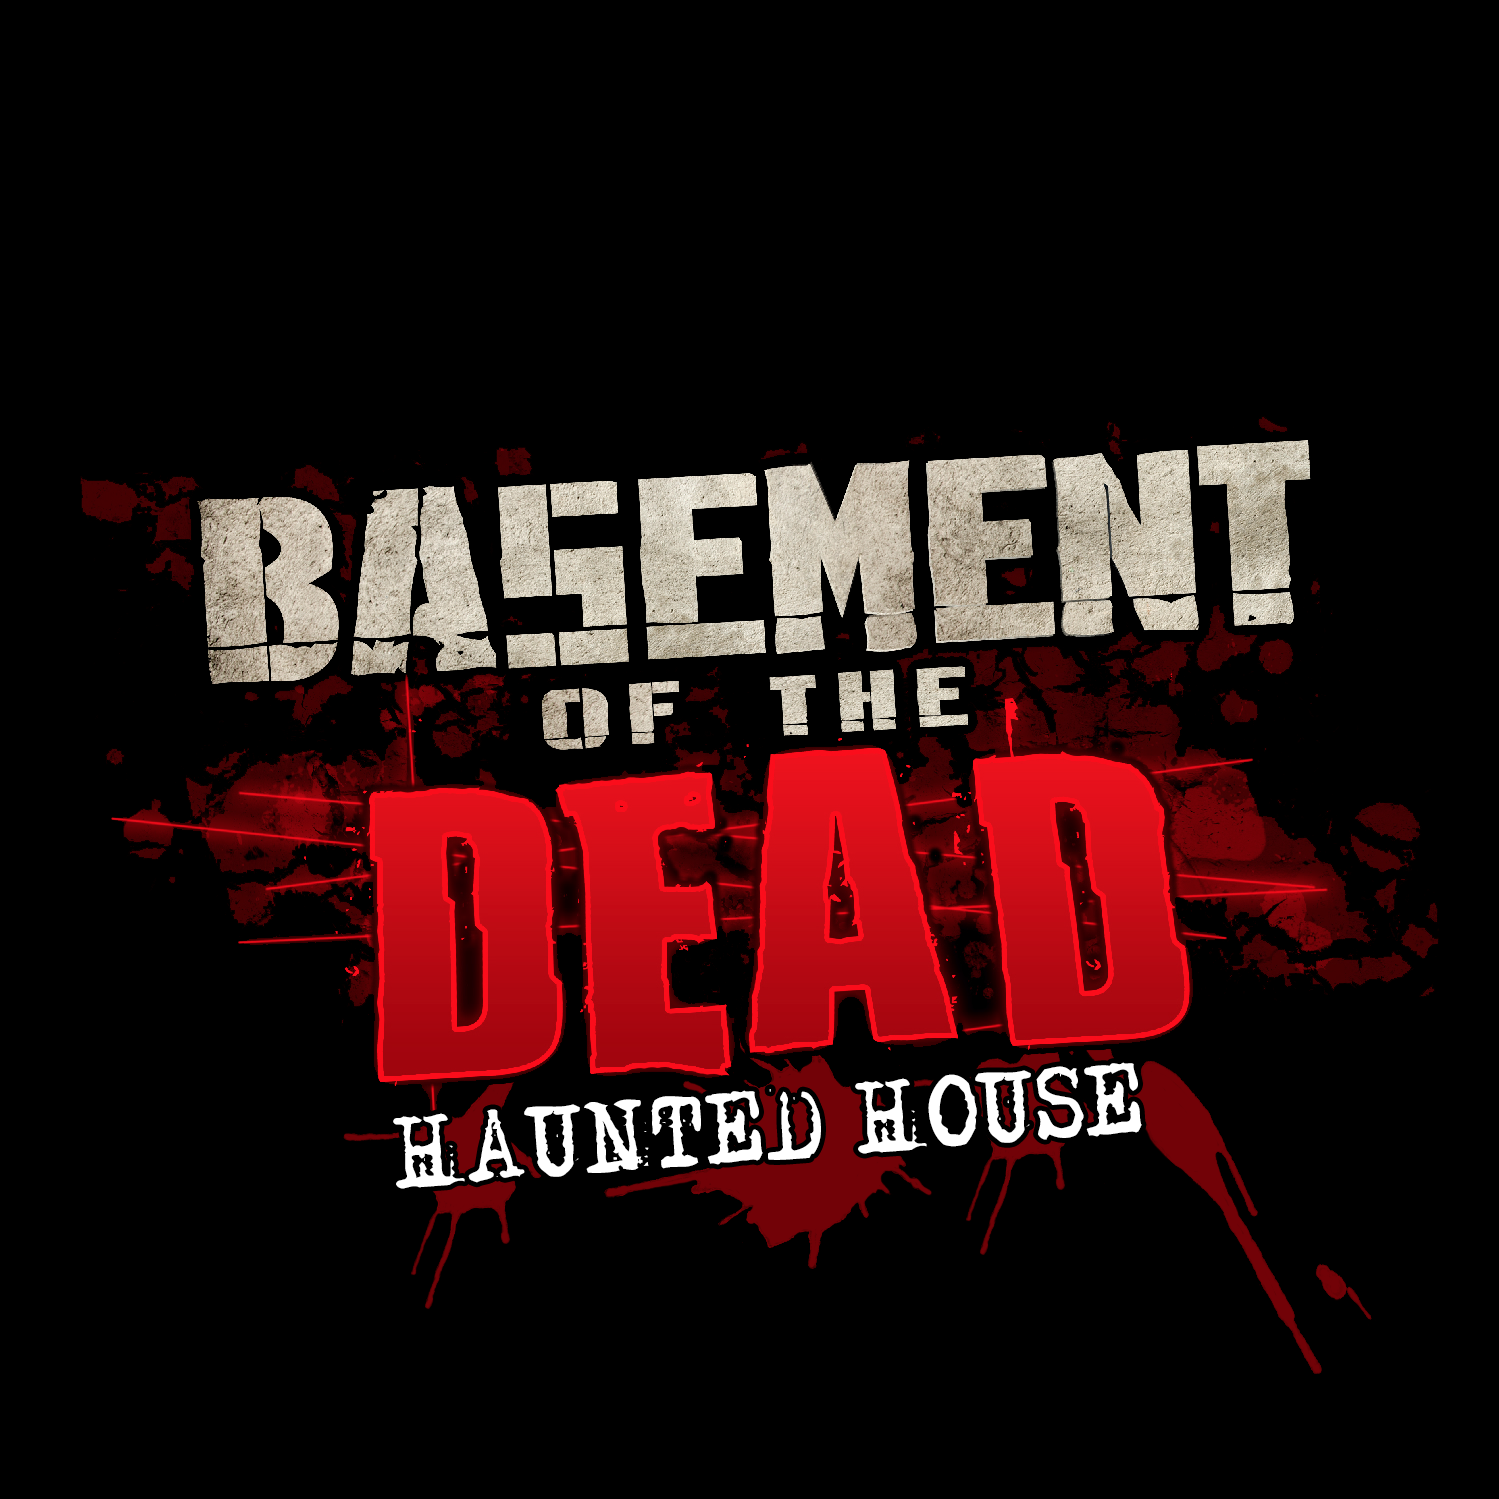 Haunted House Nyc Youtube: Basement Of The Dead Haunted House Coupons Near Me In